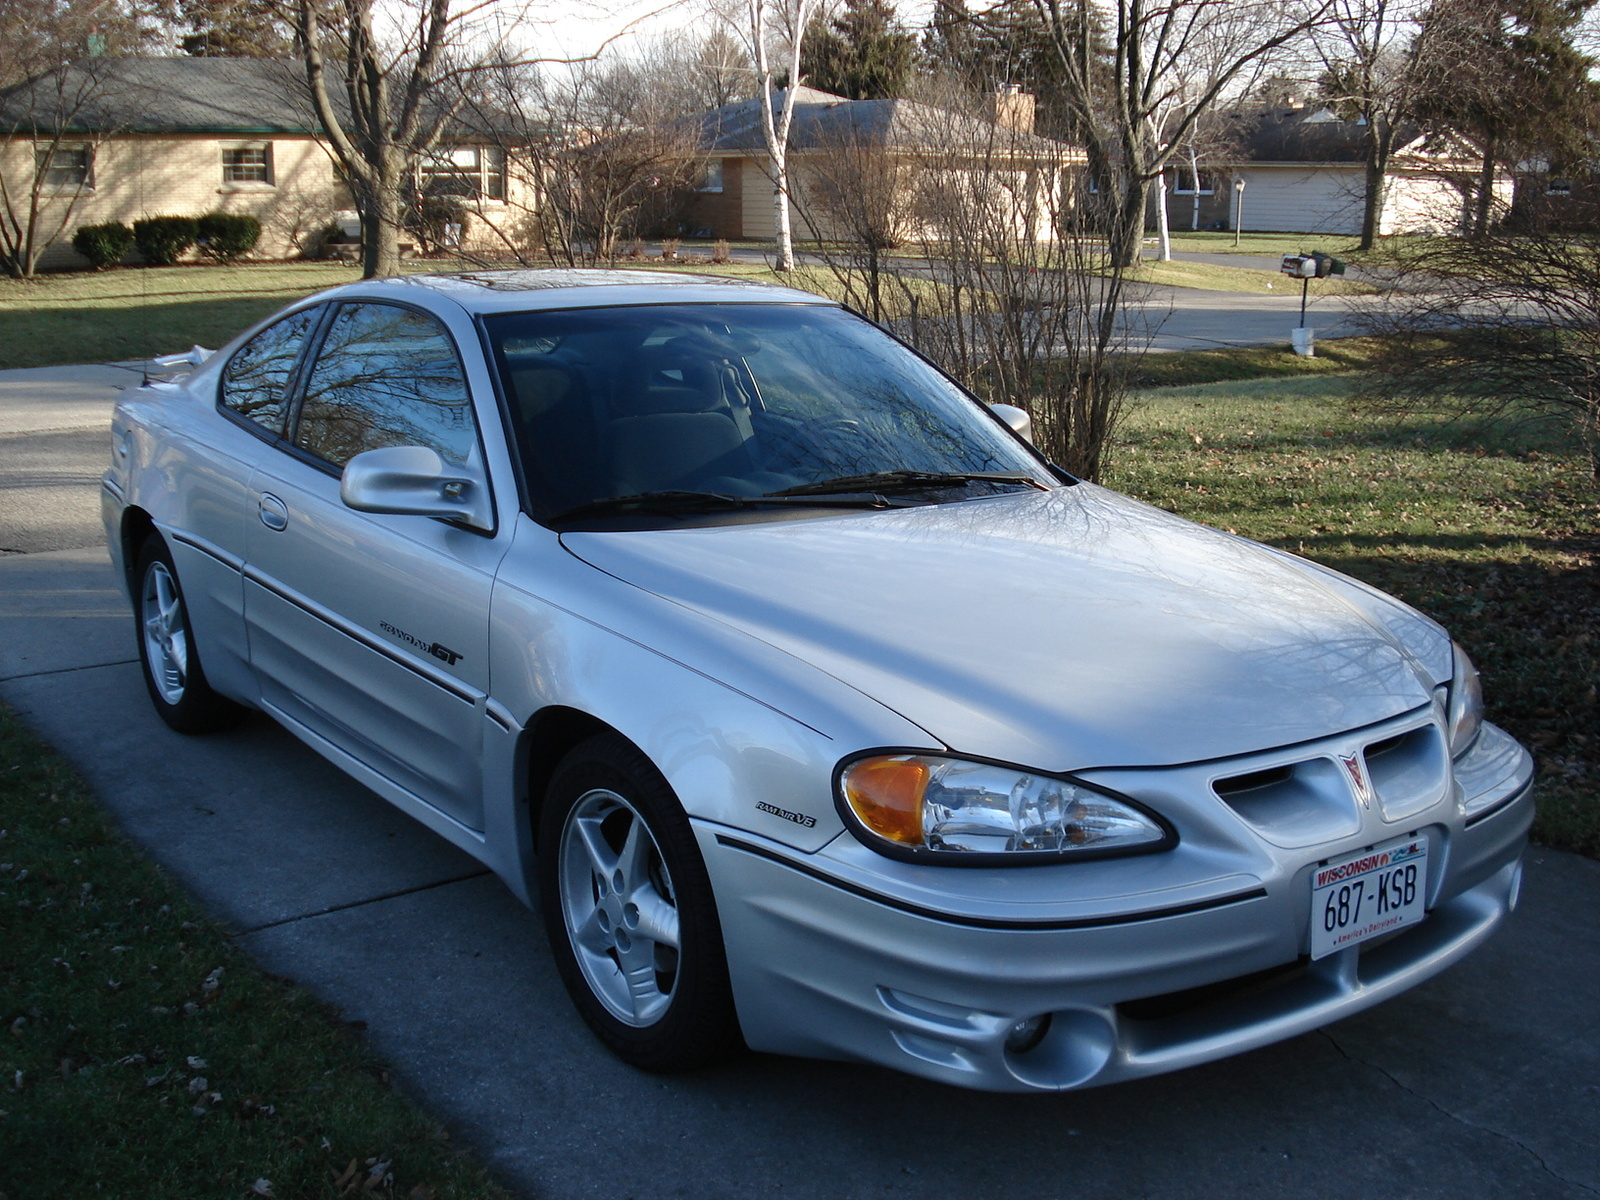 2001 Pontiac Grand AM GT on 4387